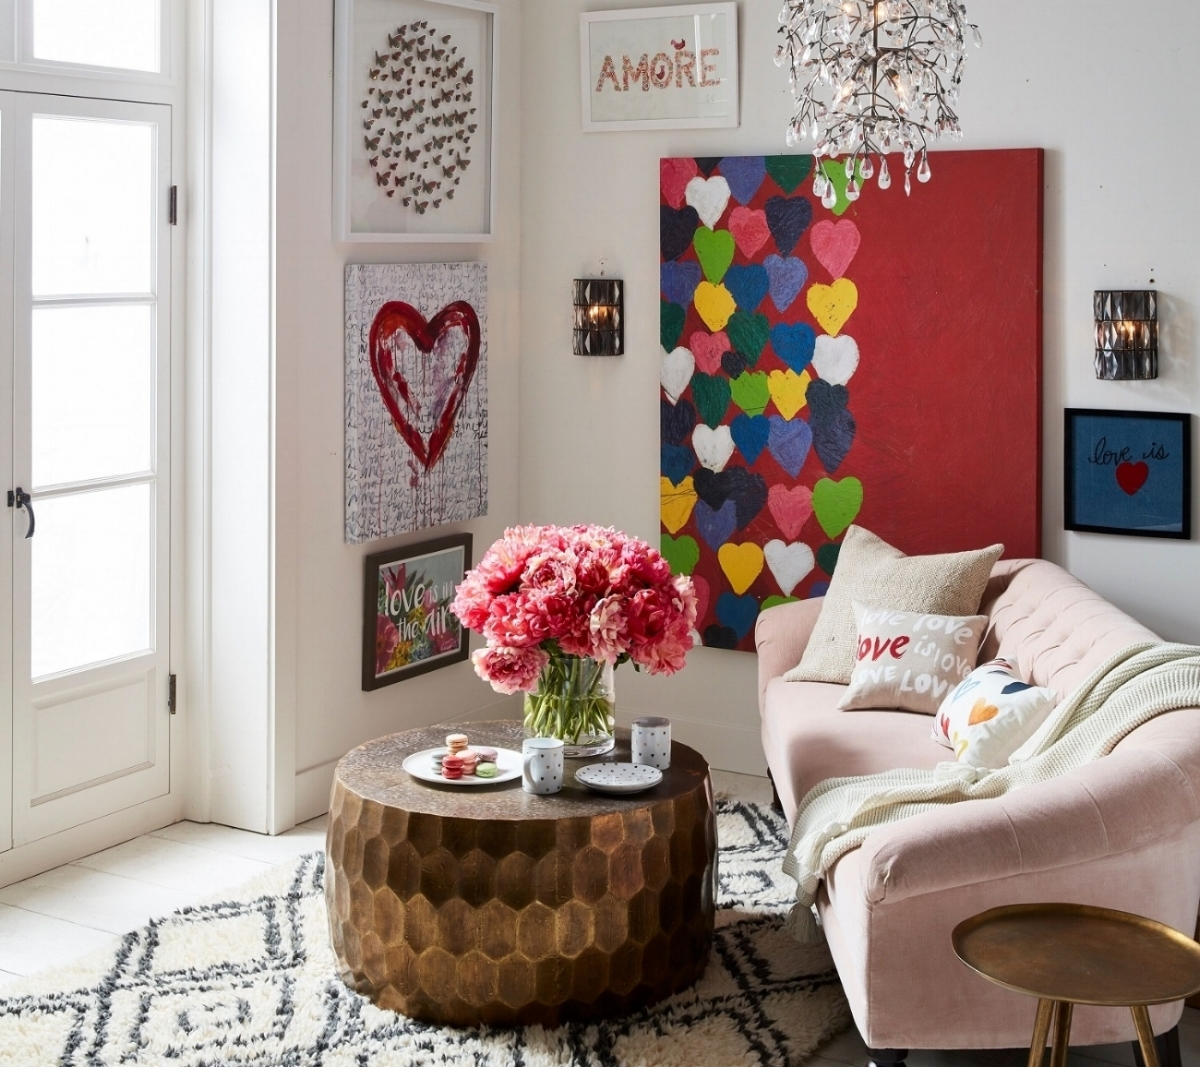 Give a little love in 2018 with Pottery Barn's  Love Gallery  art pieces, pillows, Bella crystal round chandelier, Madison upholstered settee and metallic tables. Check out details at  www.potterybarn.com .  Photo courtesy of Pottery Barn.